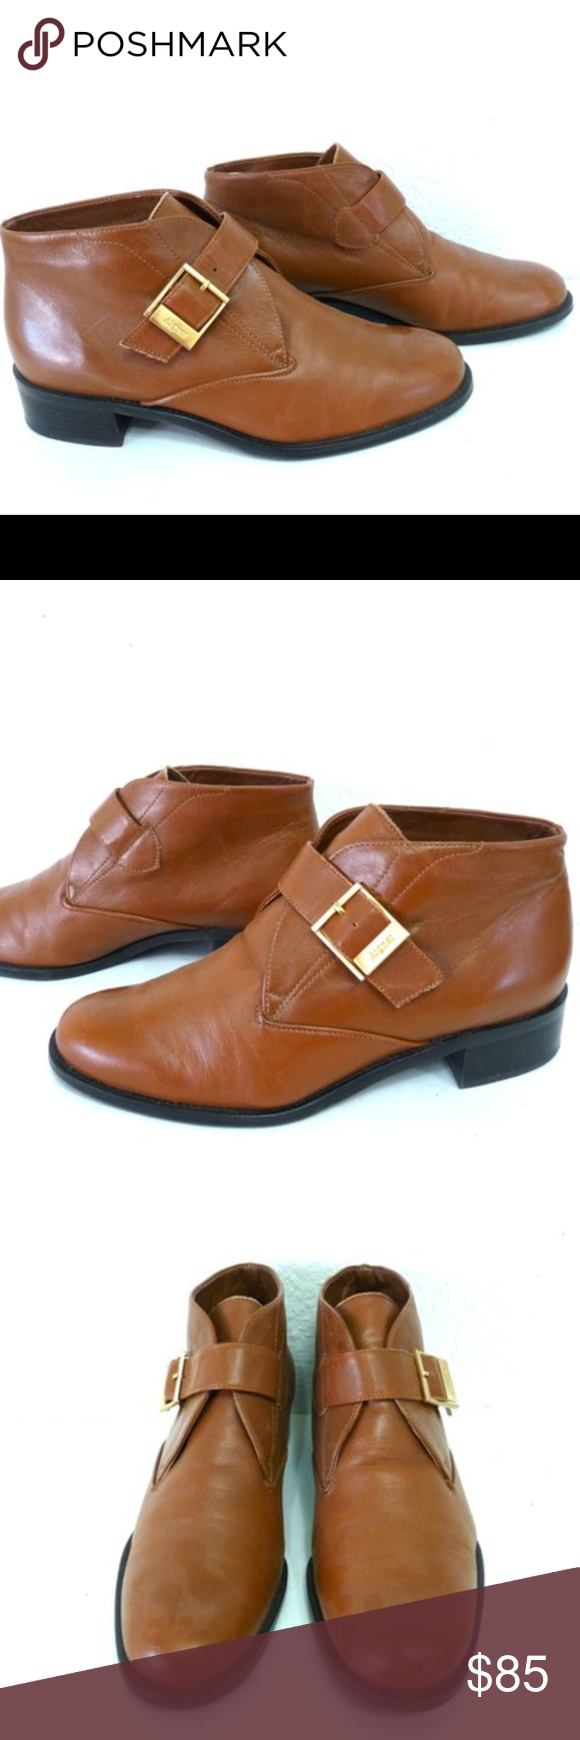 339842f564b51 NWT Etienne Aigner leather vintage brown booties 7 Boutique в 2018 г ...